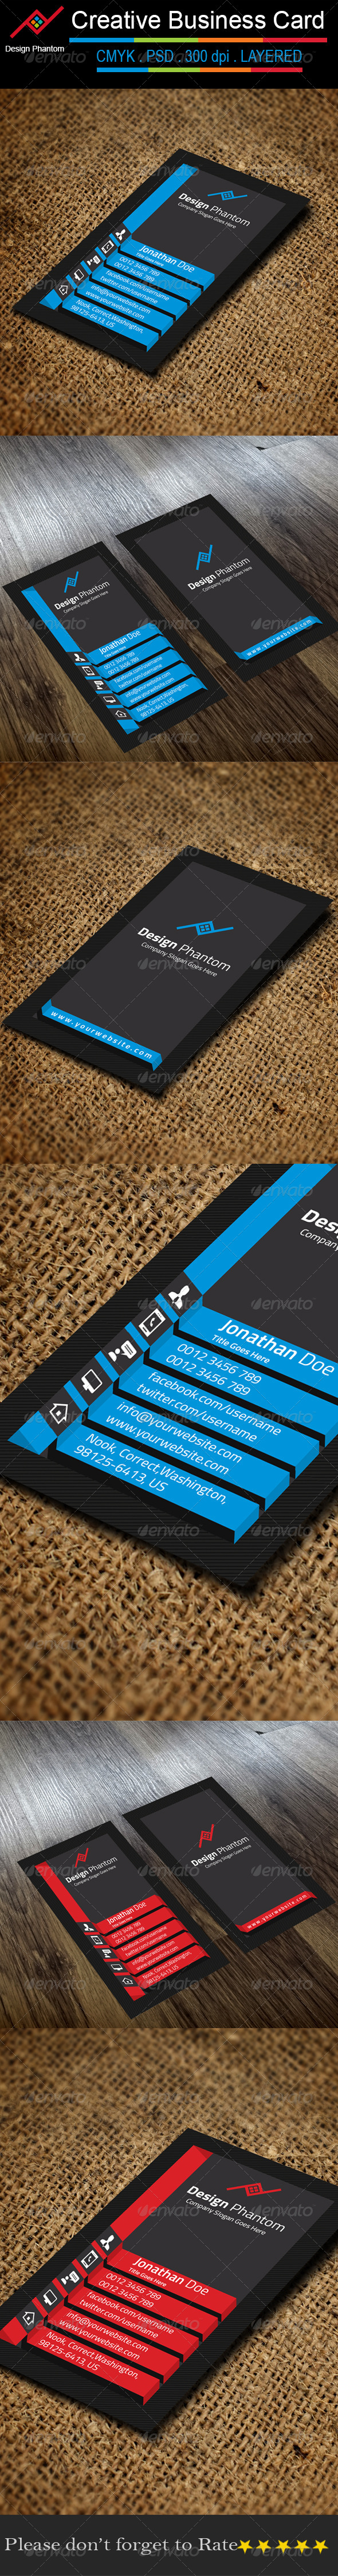 GraphicRiver Creative Business Card 8603202